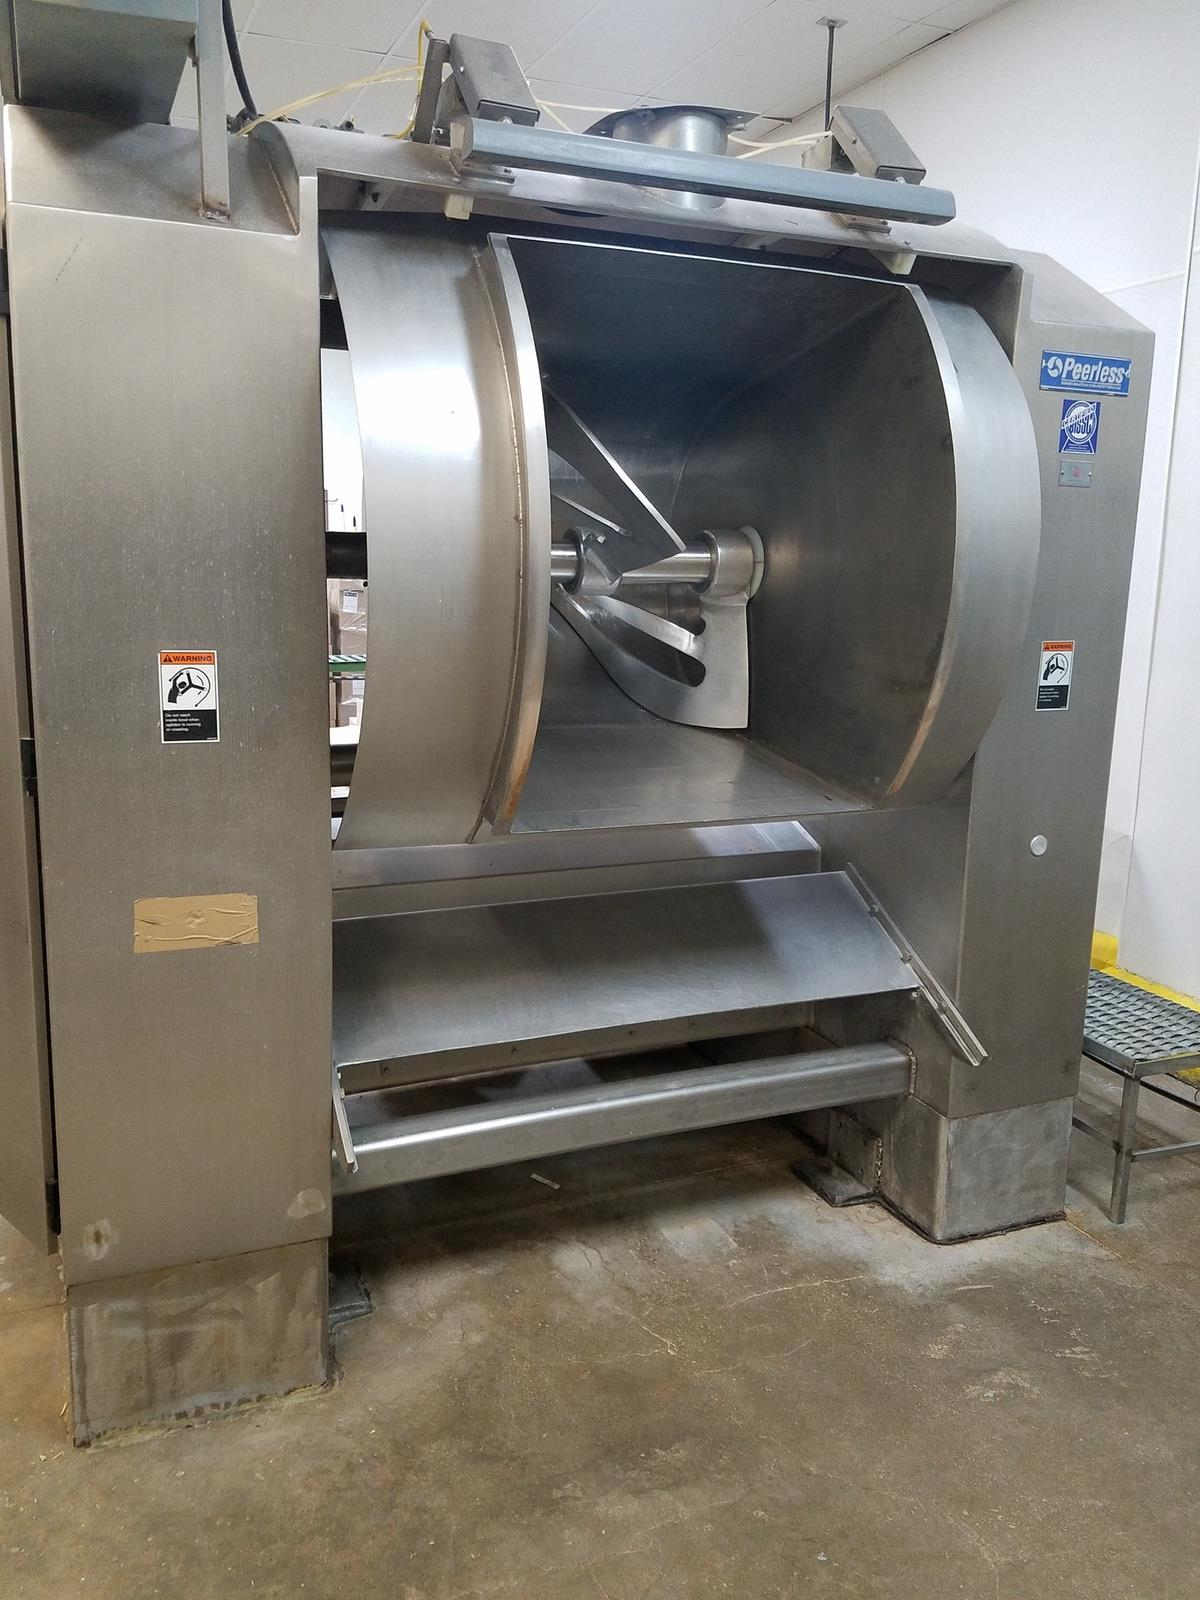 Cookie, Pie, Pastry & Cheese Cake Prodction Plant - Late Model Mixers, Vac Portioning, Pie Lines, Ovens, Depositors, Packaging, Support and More